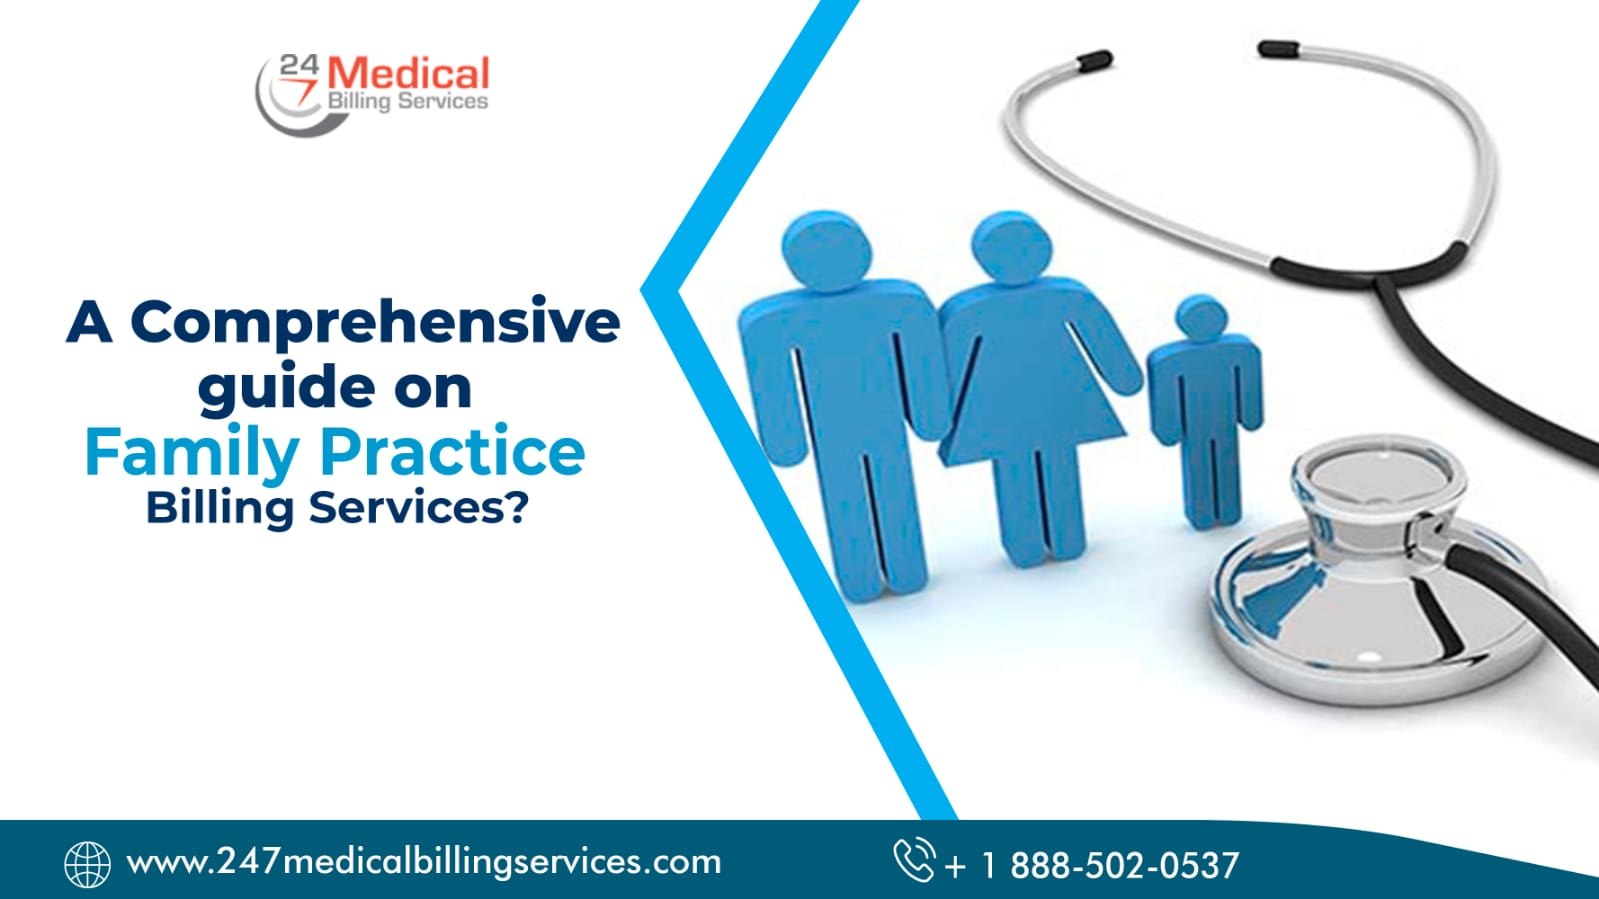 A Comprehensive Guide on Family Practice Billing Services